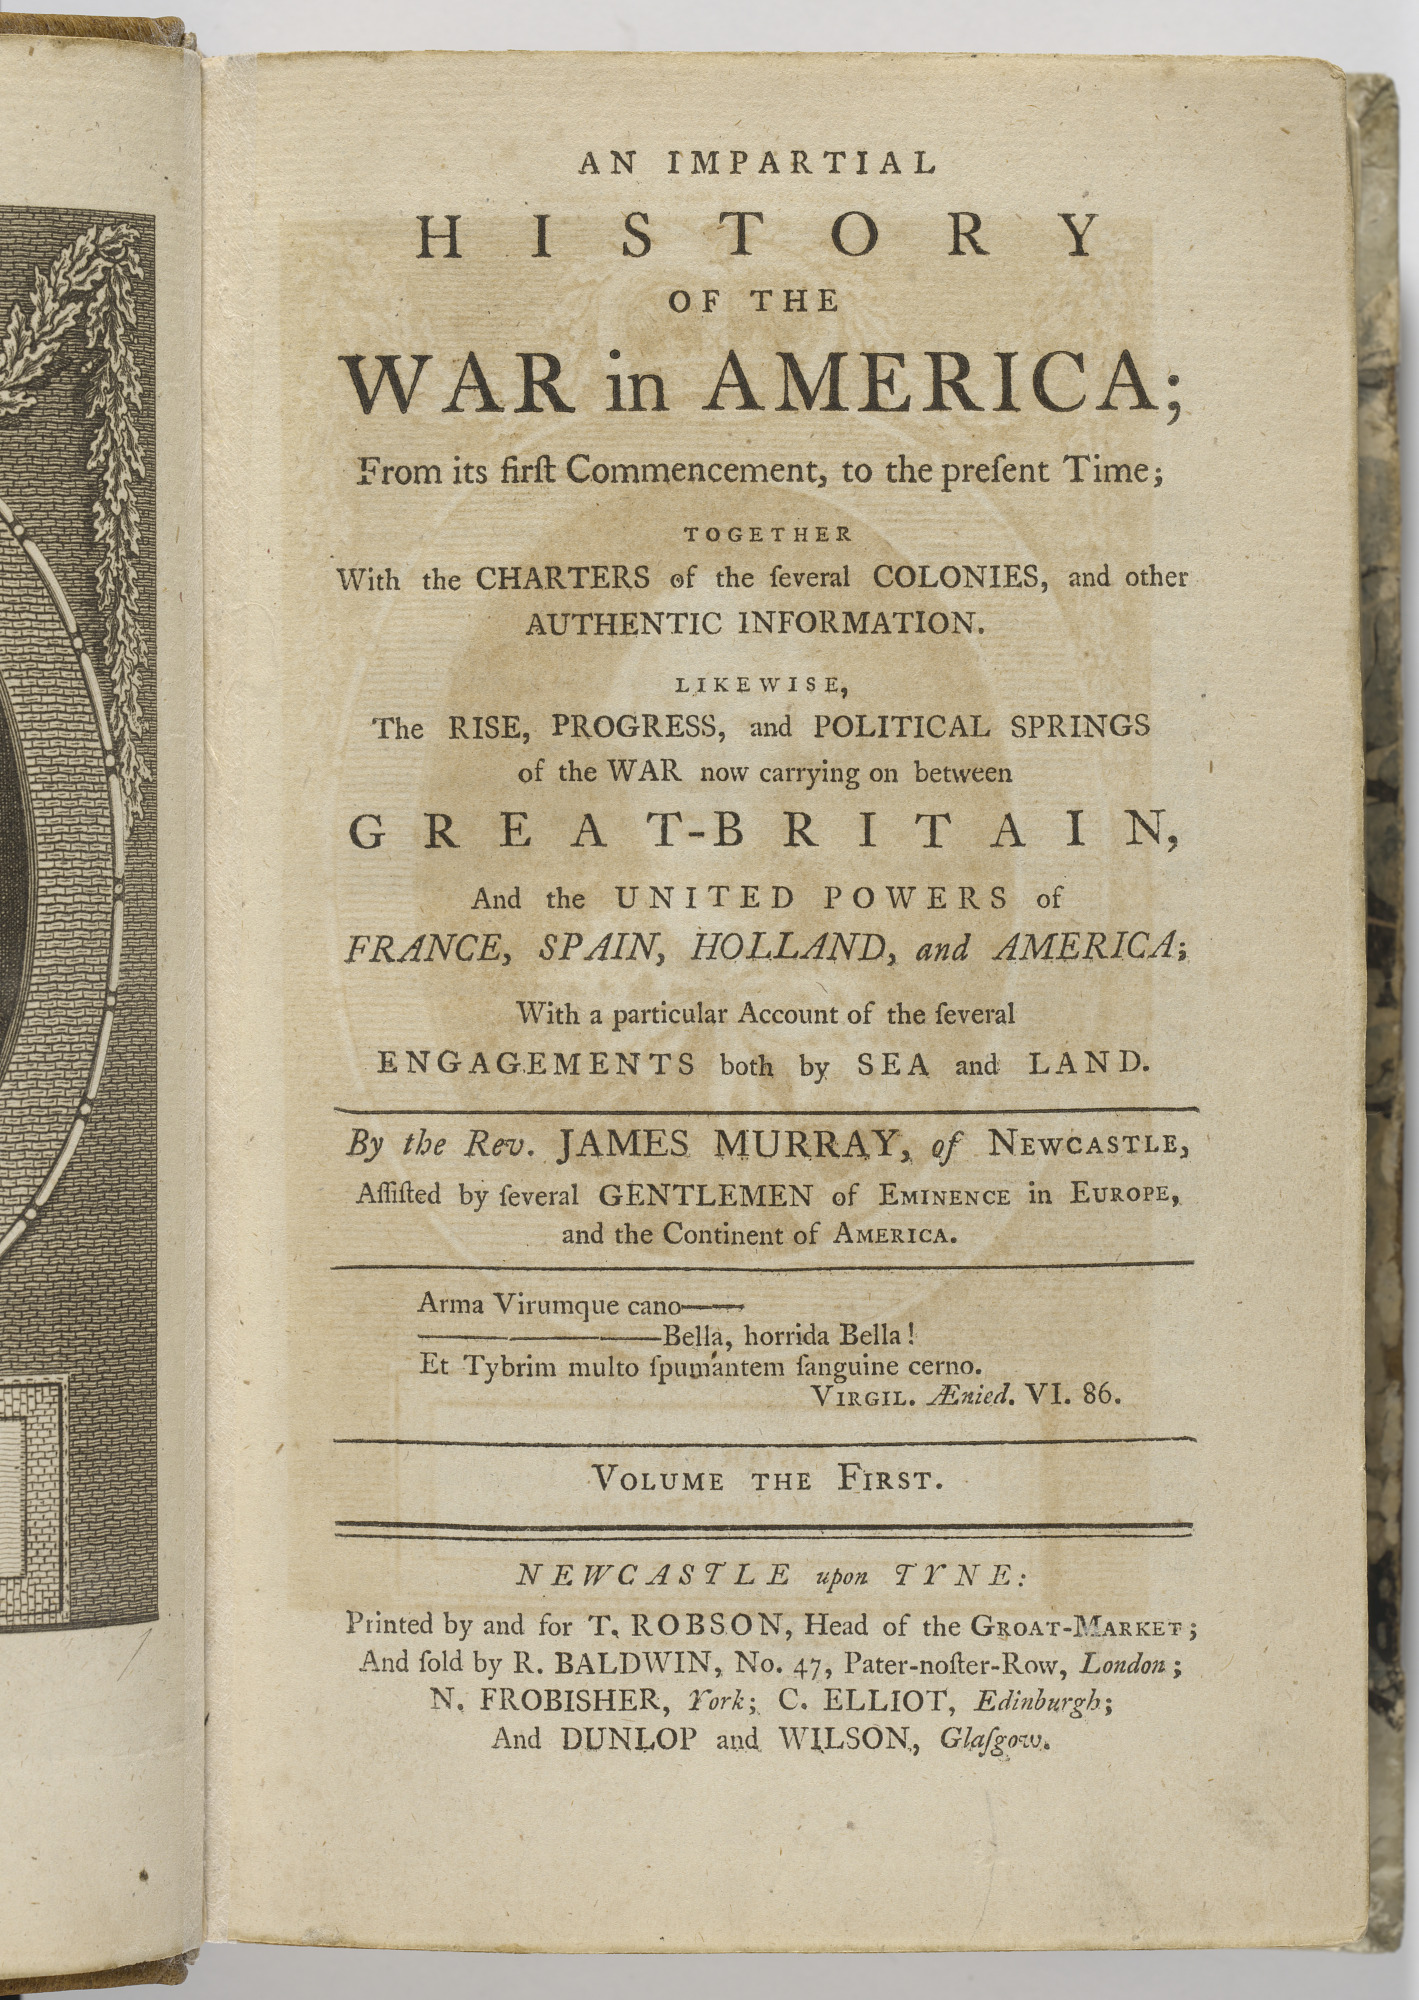 An Impartial History of the War in America, Vol. 1